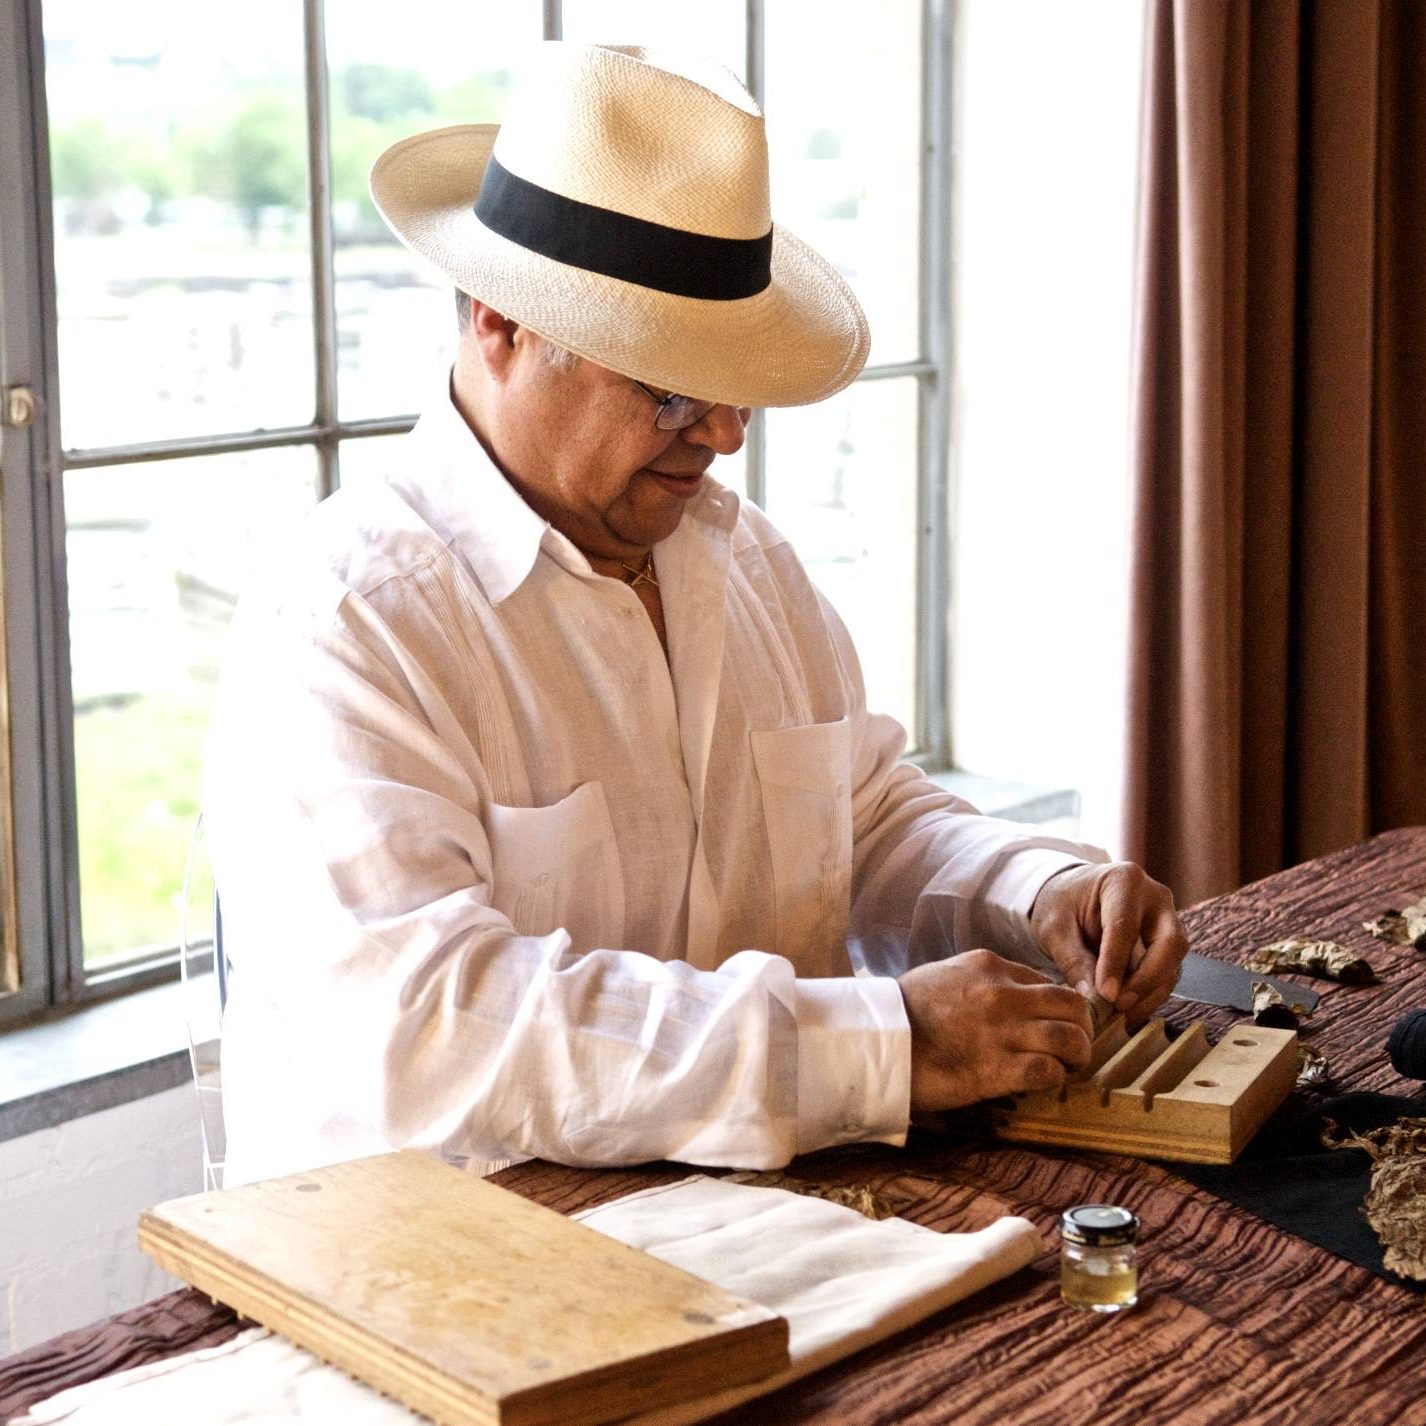 Cuban style hand rolled cigars